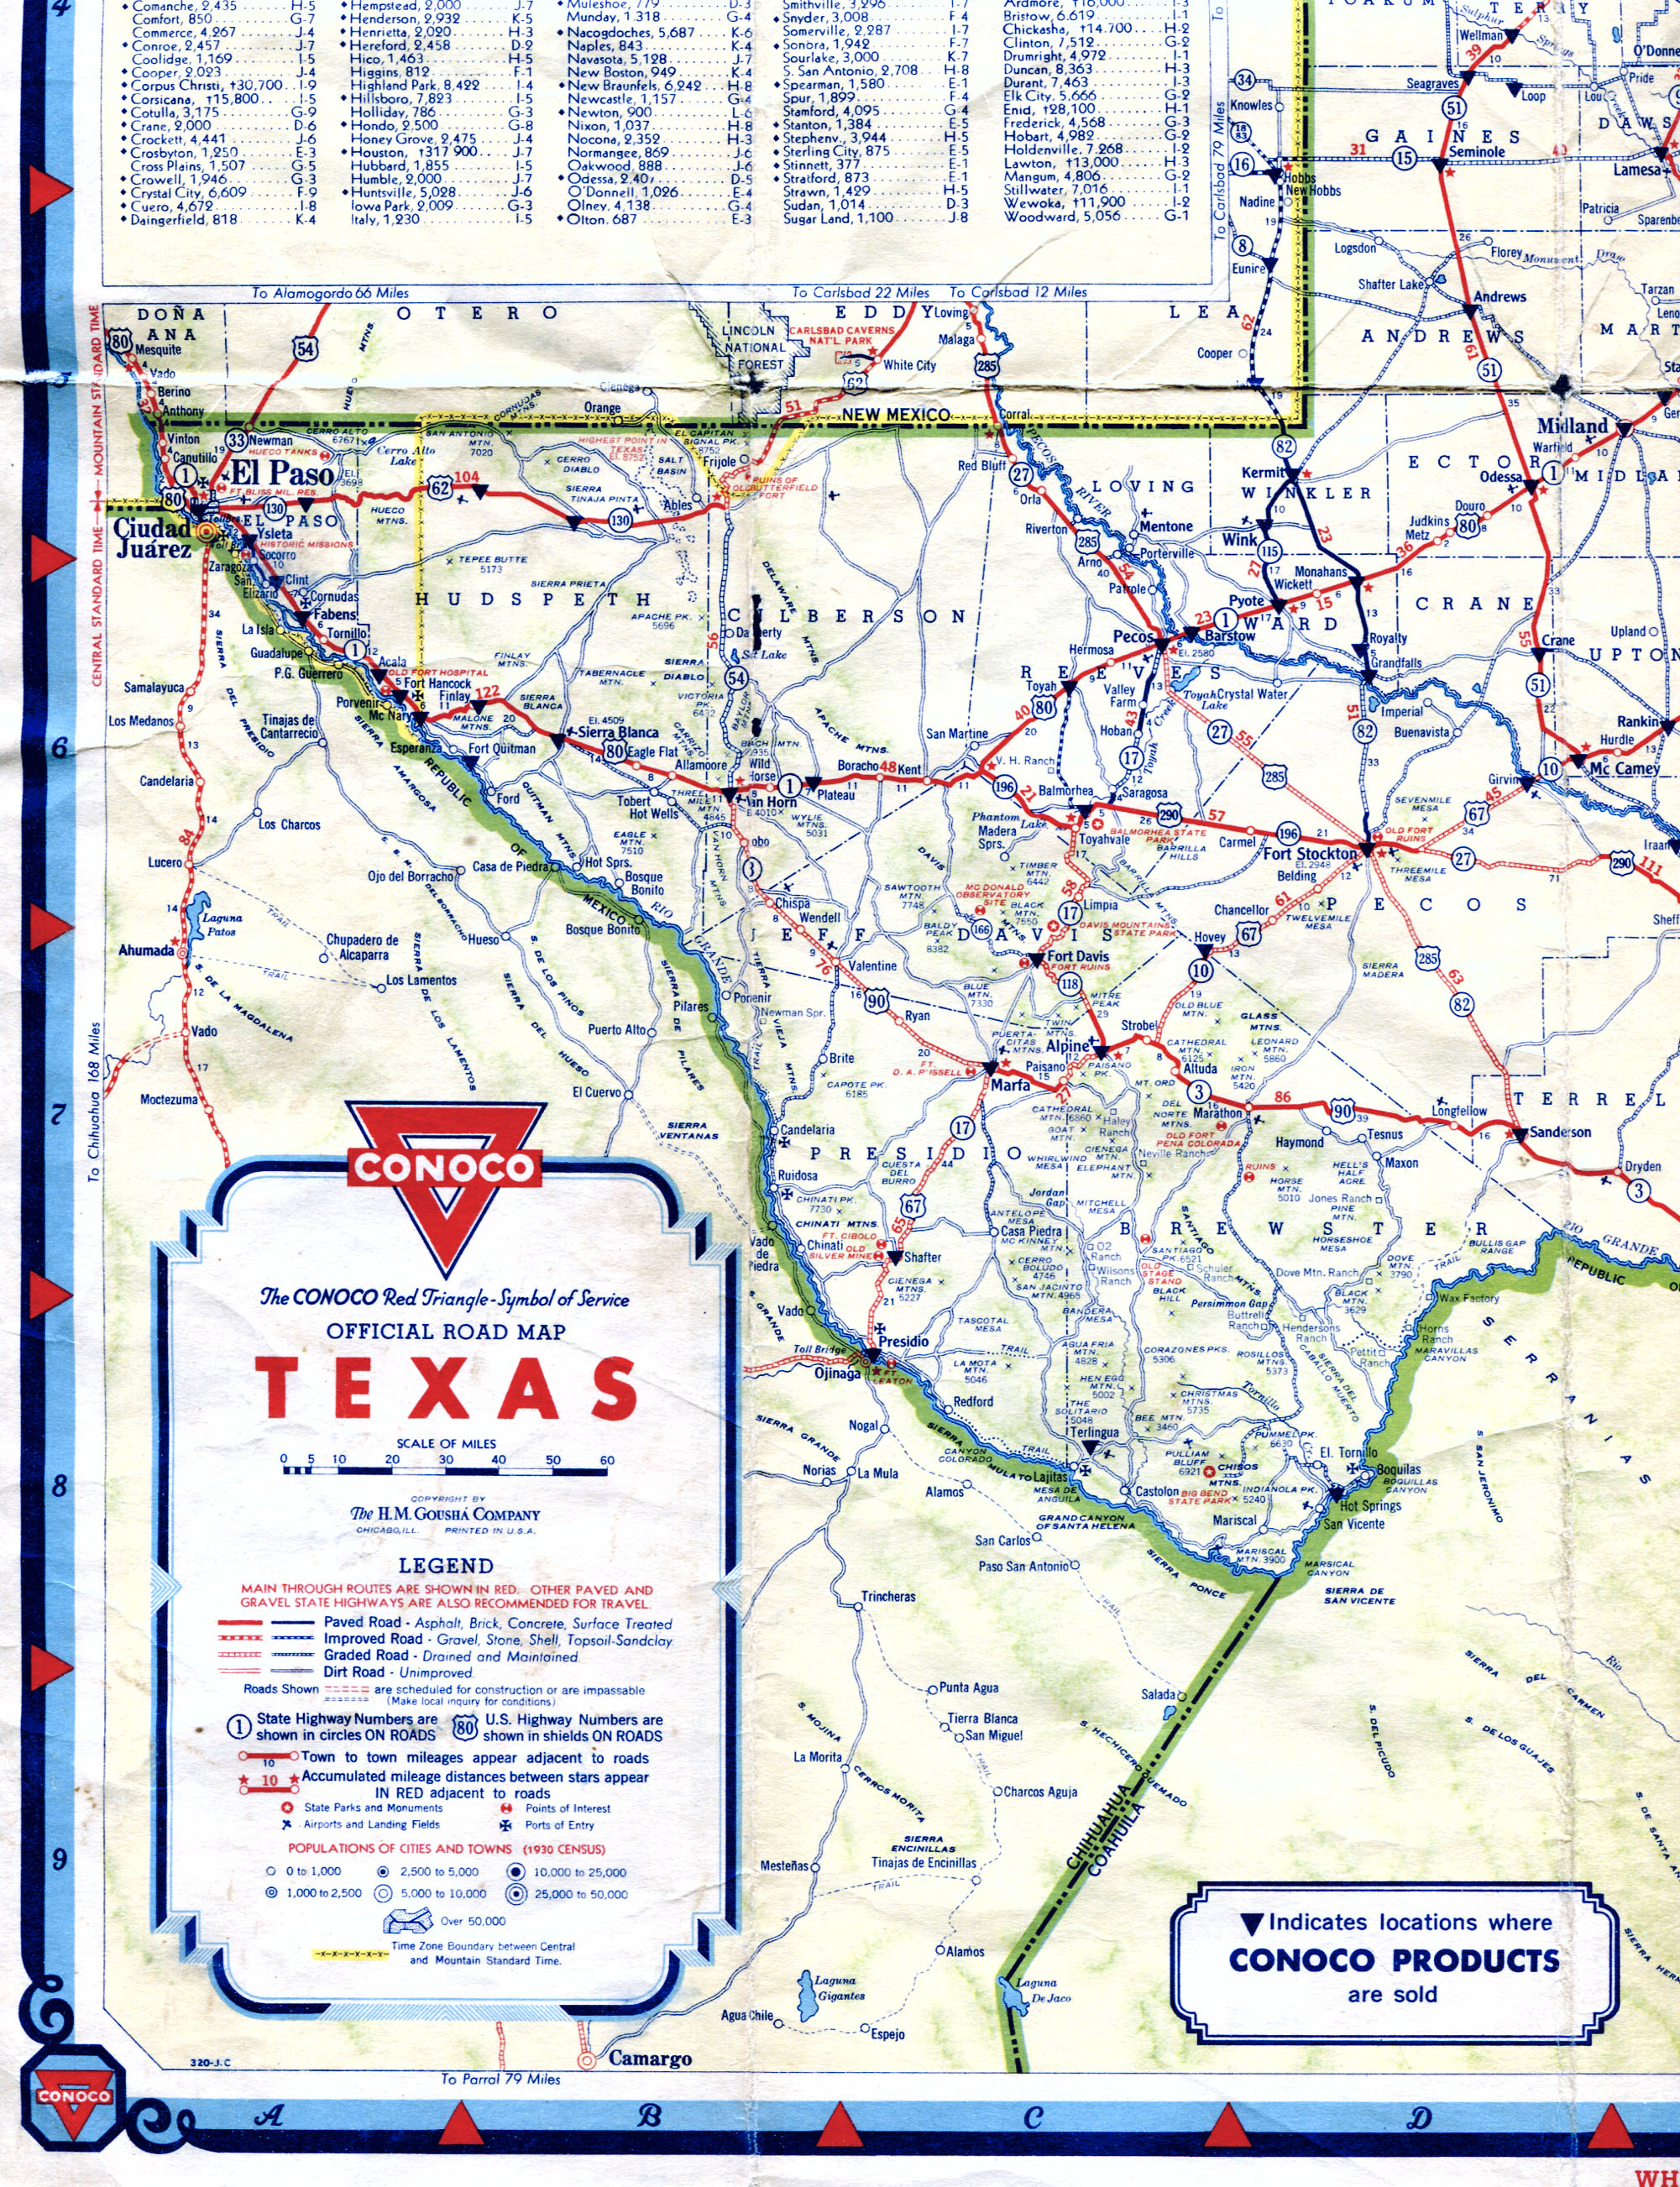 Old Highway Maps Of Texas - Free Texas Highway Map